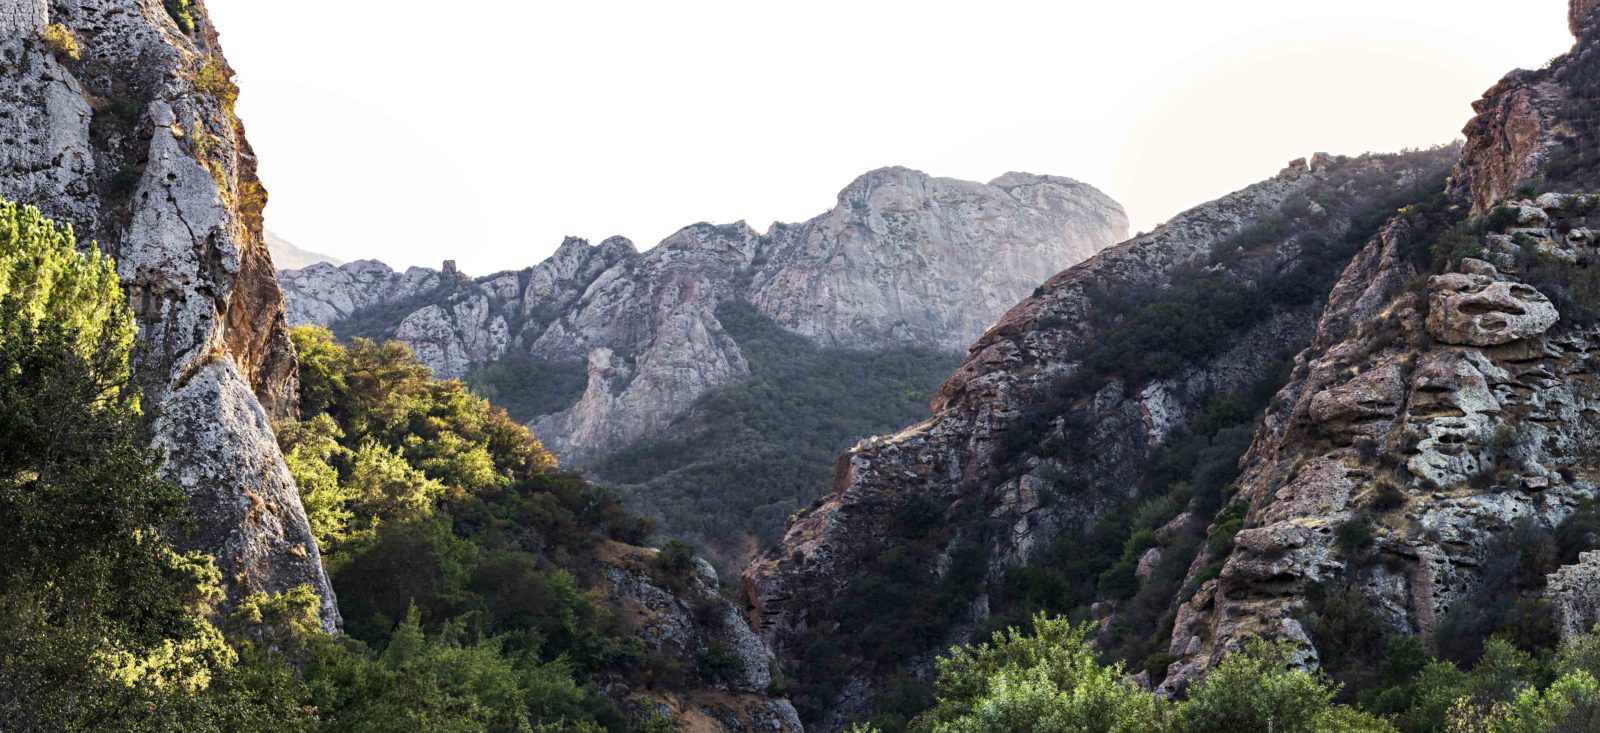 Santa Monica Mountains in Malibu Creek State Park